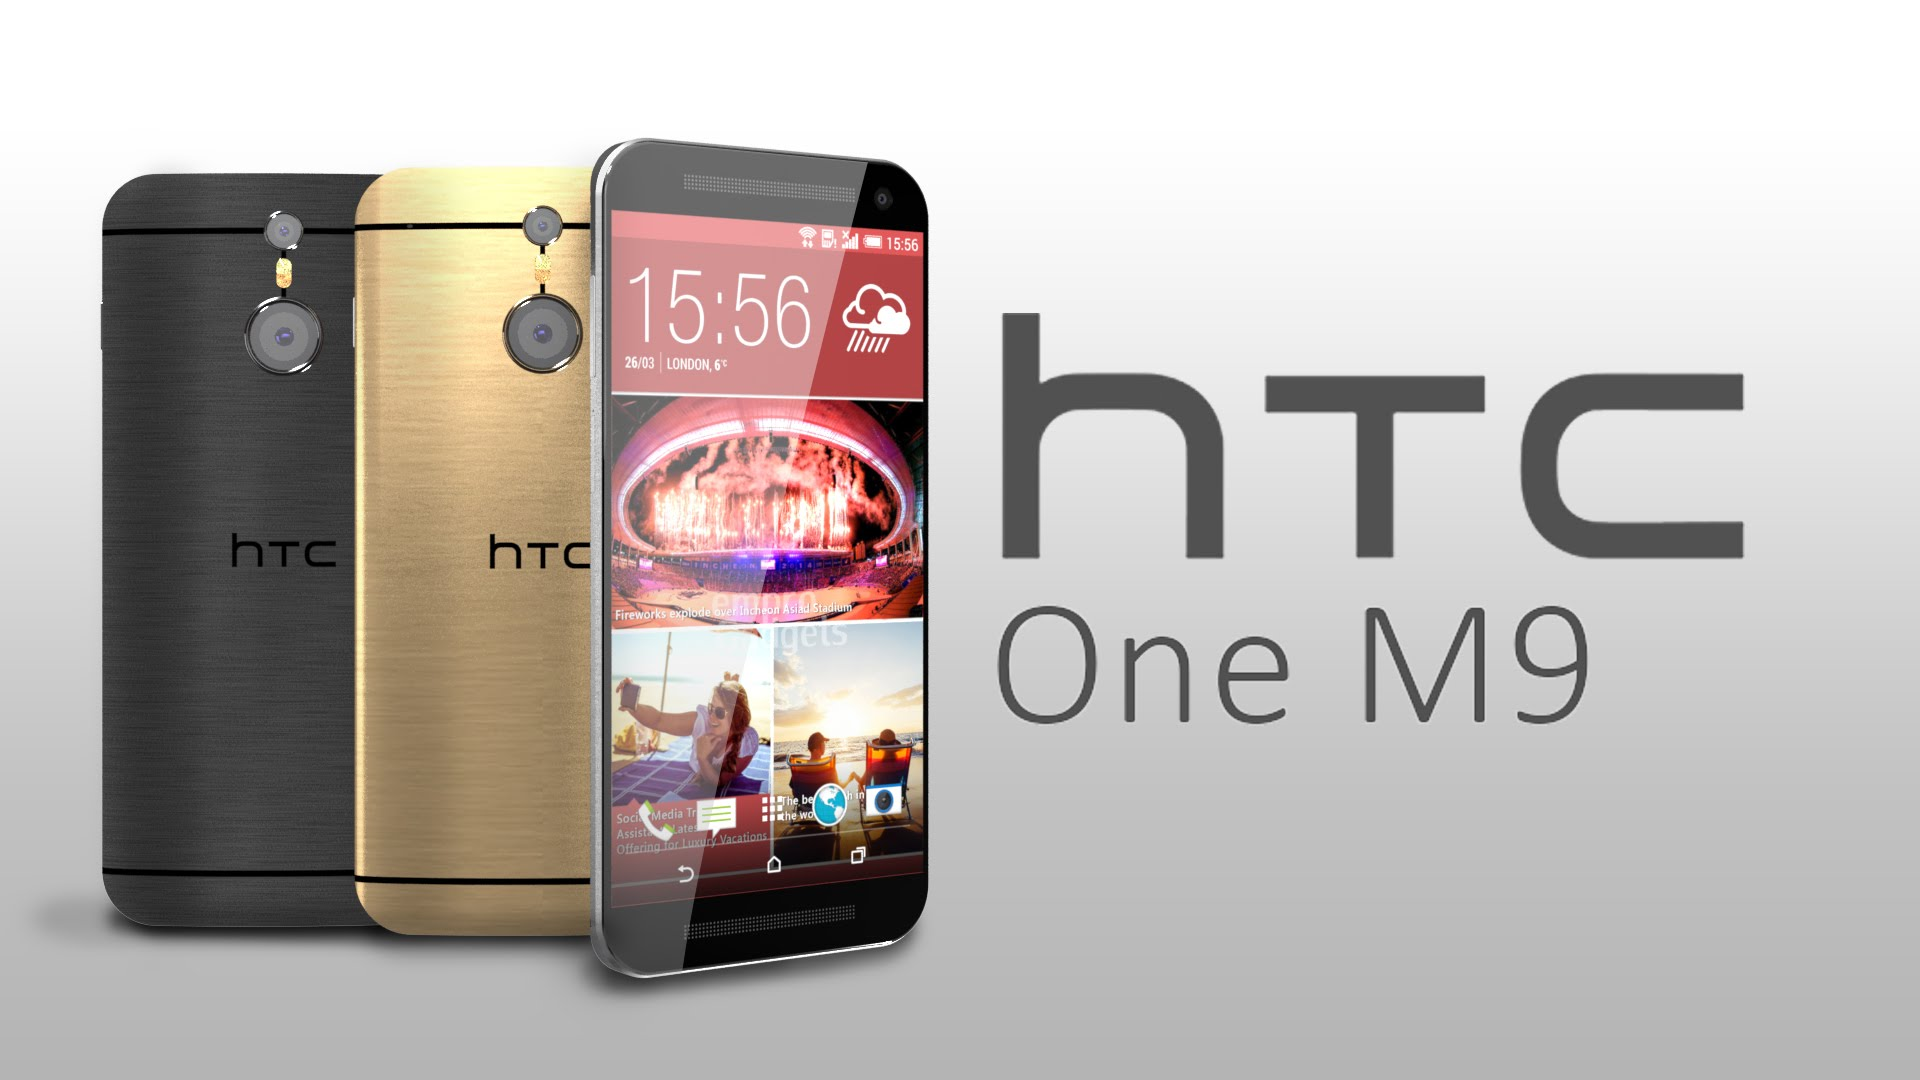 HTC One M9 versus HTC One M8 1